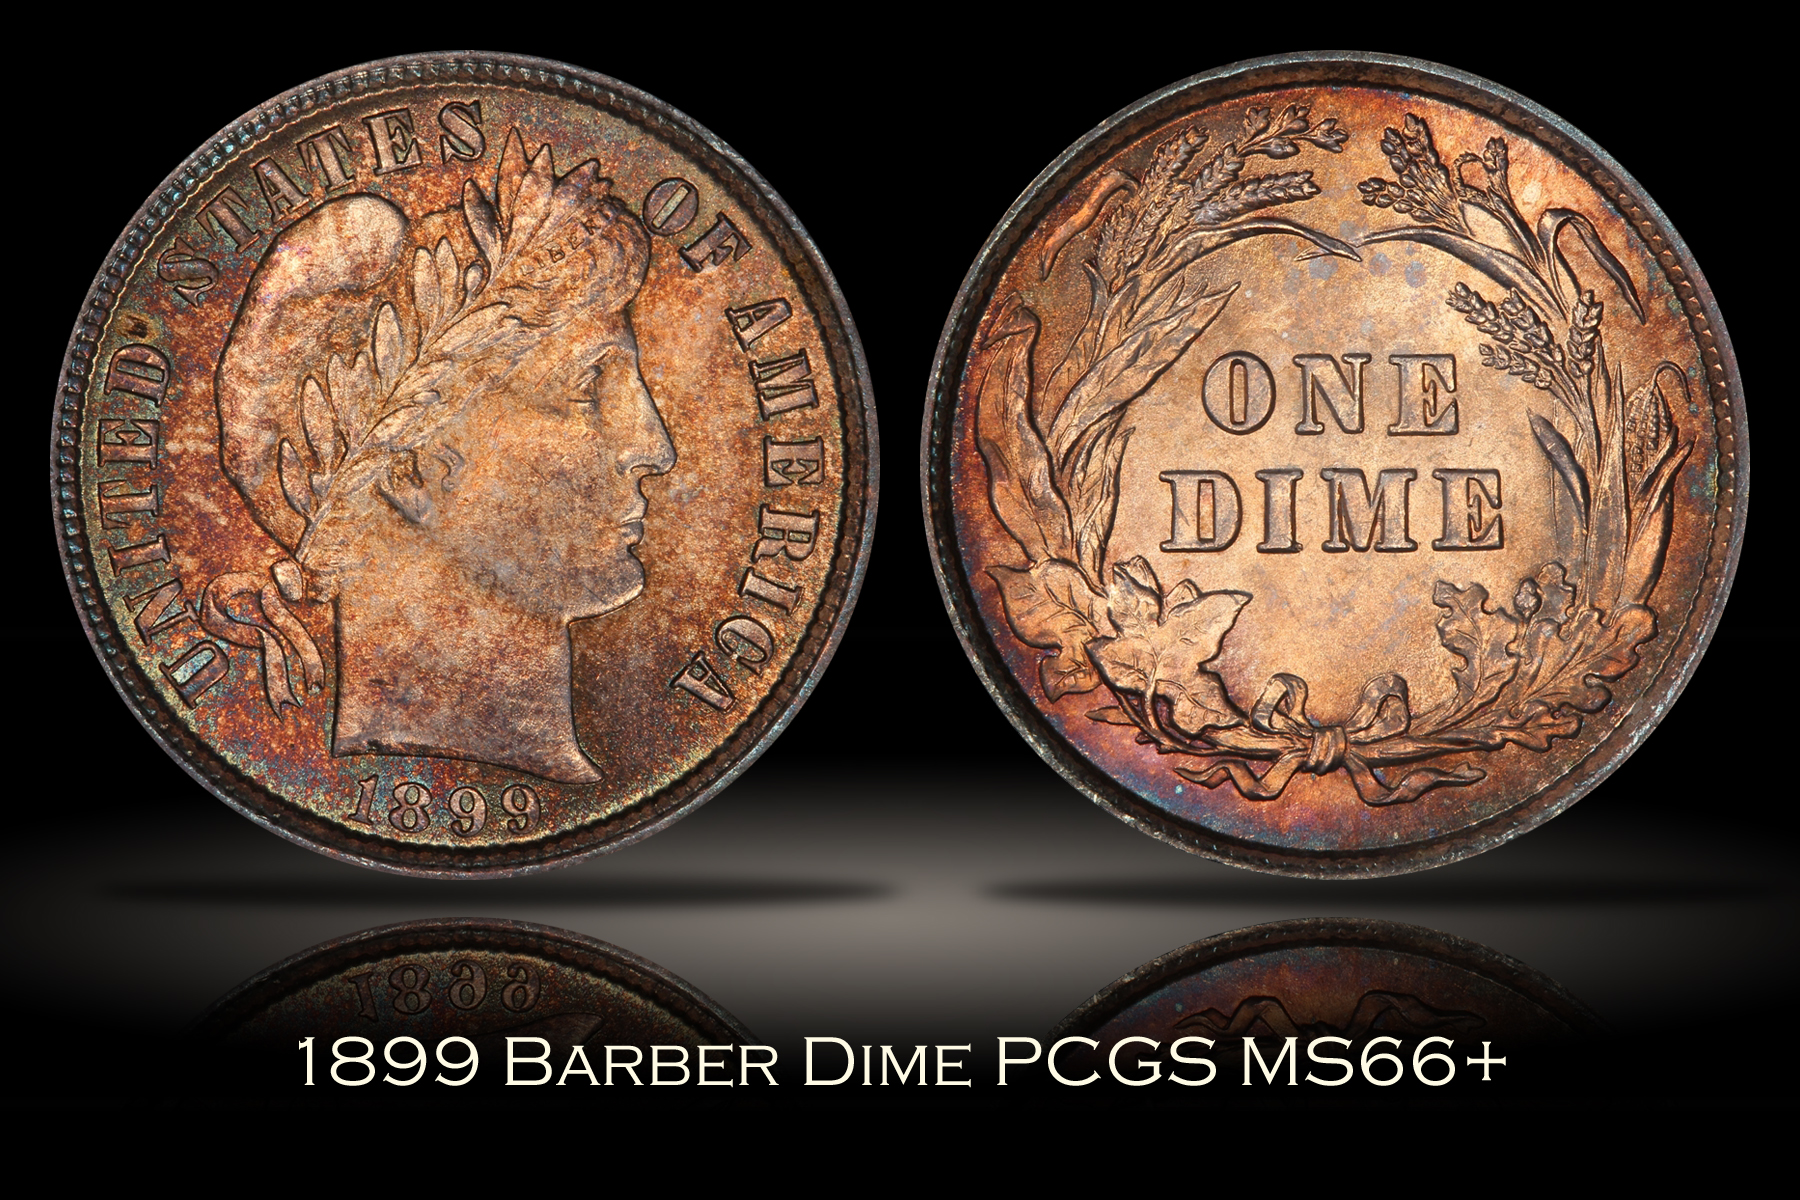 1899 Barber Dime PCGS MS66+